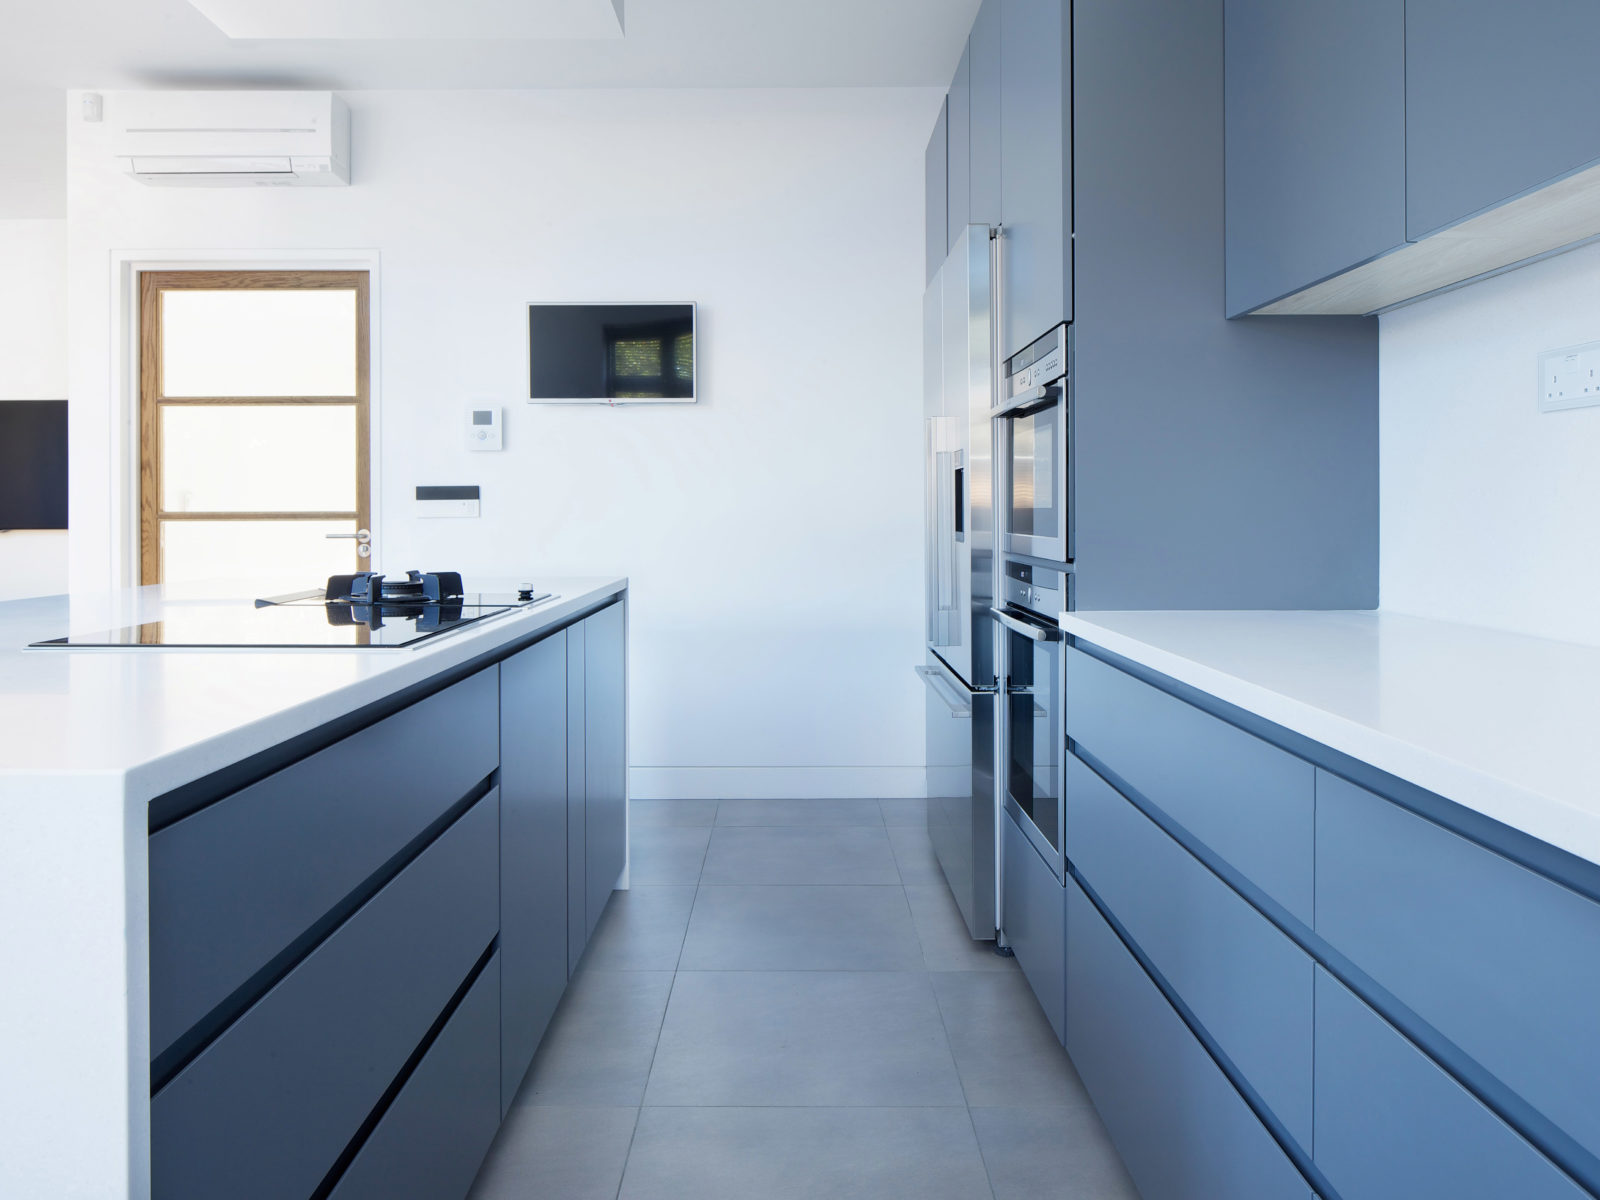 handless matt lacquered kitchen with Corian worktop and integrated appliances